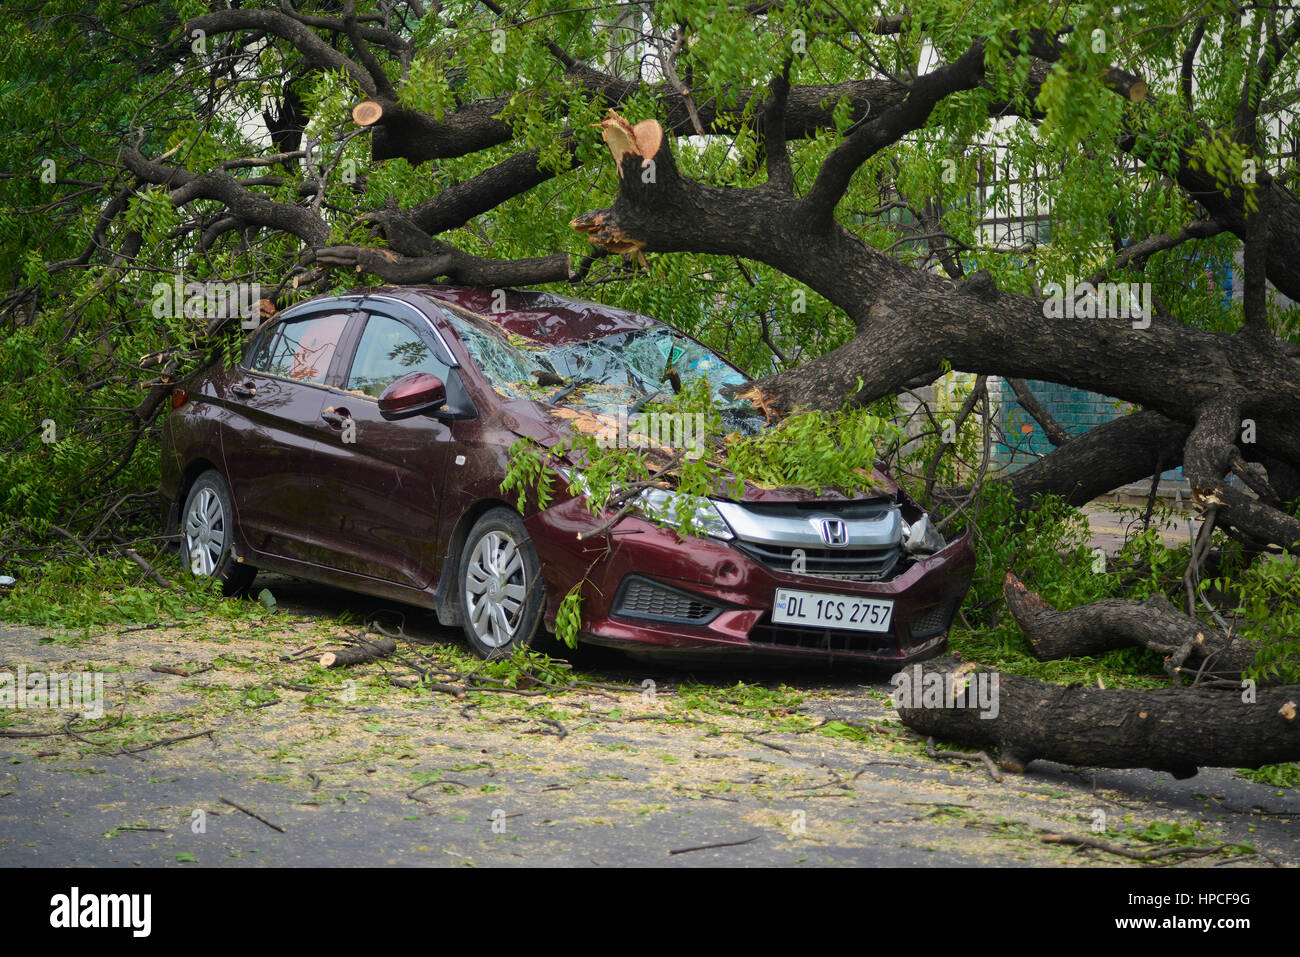 Car destroyed by a fallen tree Stock Photo